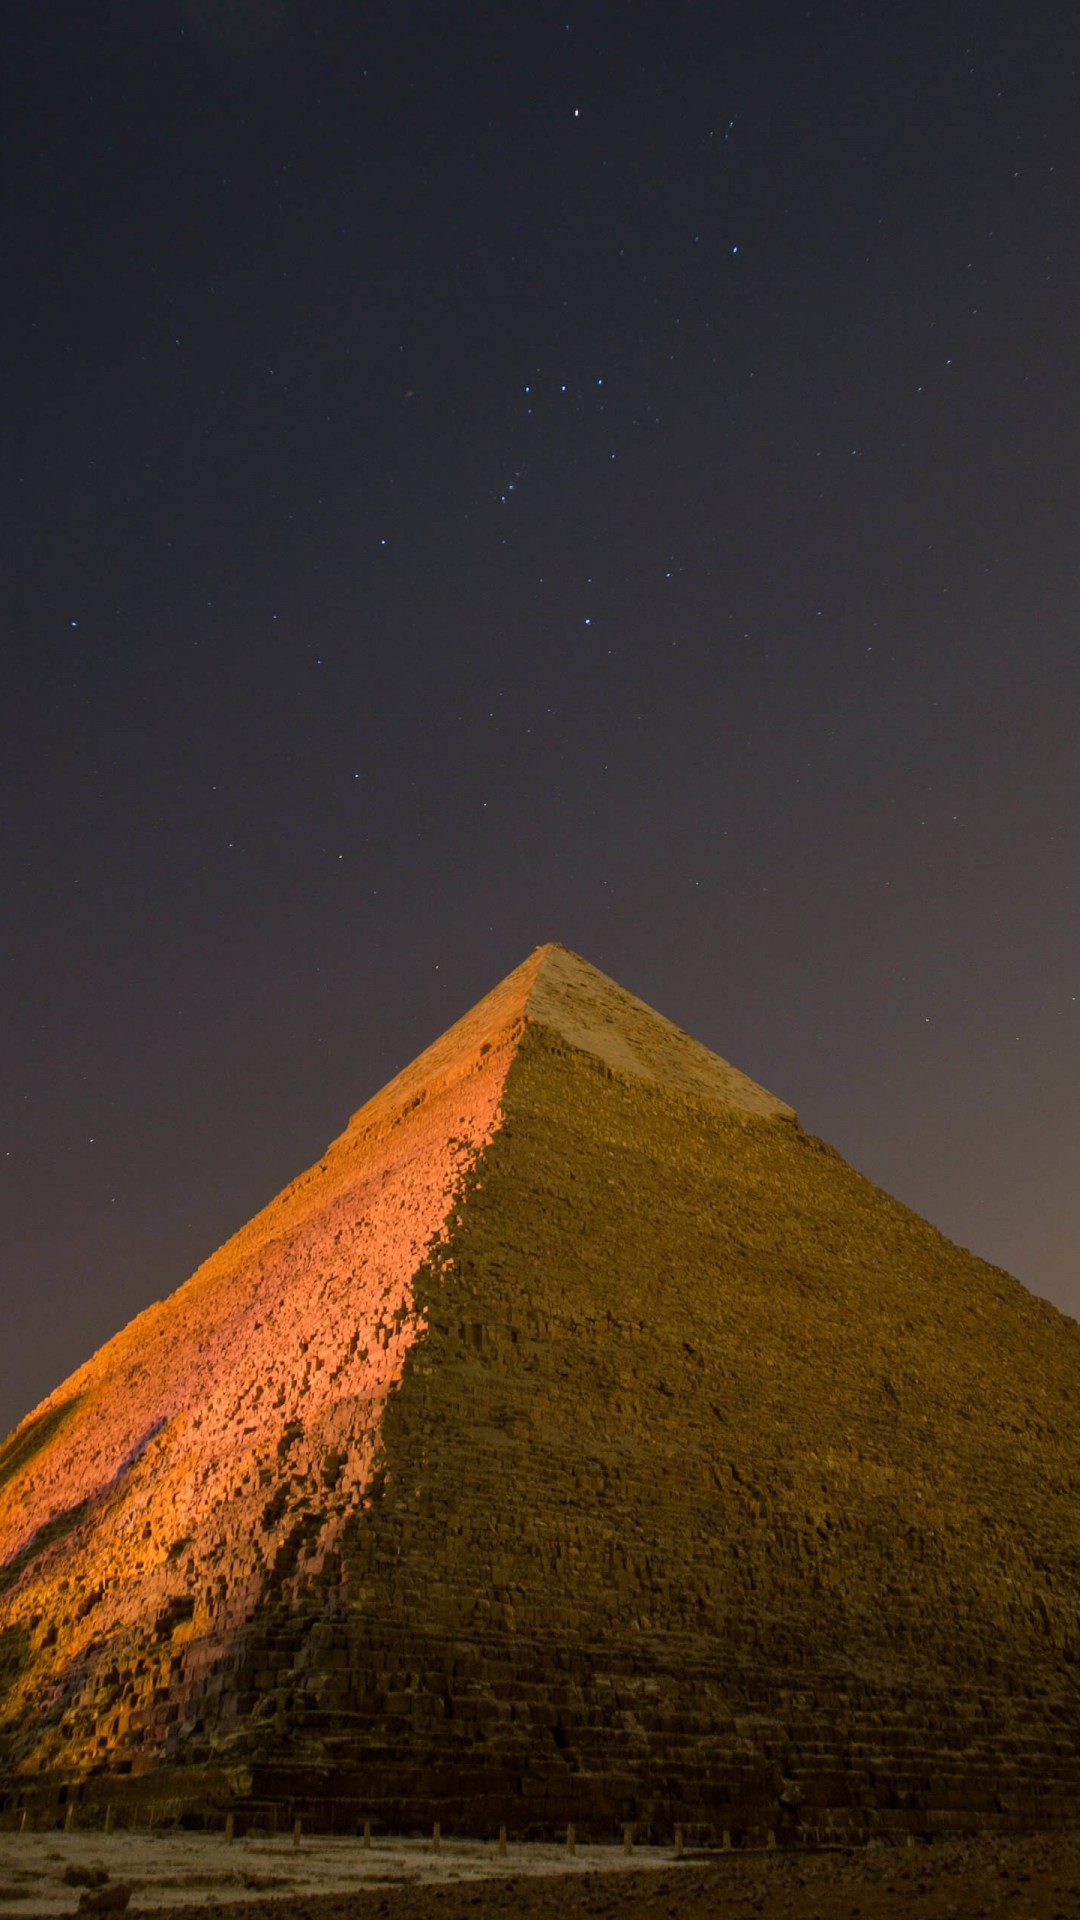 Pyramid by Night Wallpaper for SONY Xperia Z3